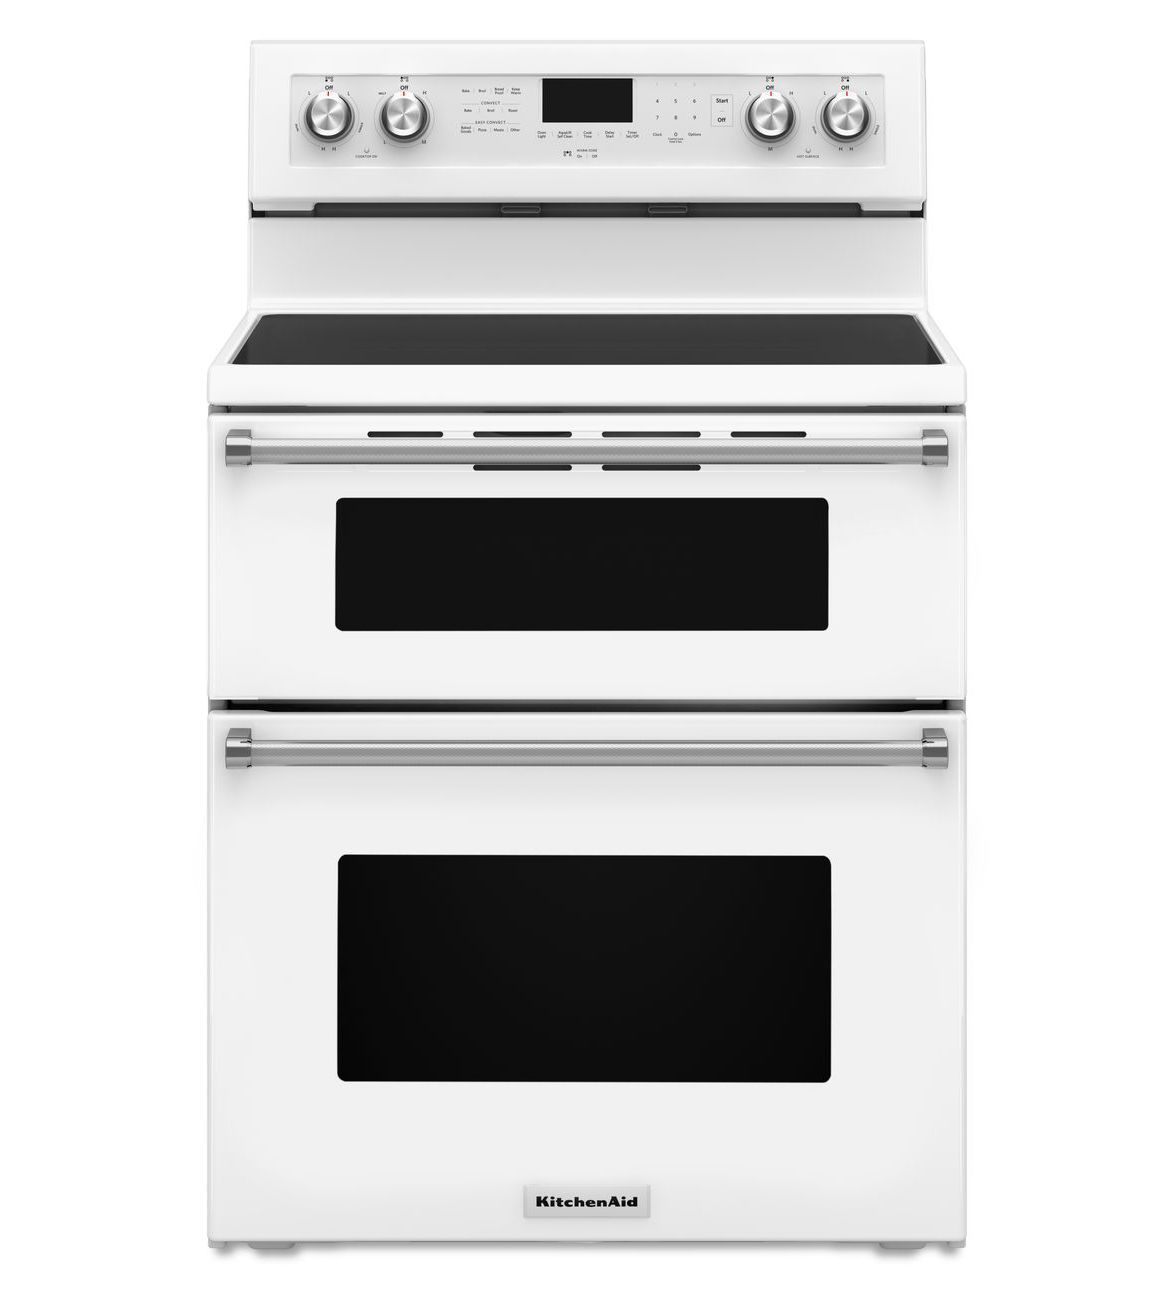 30inch 5 burner electric double oven convection range